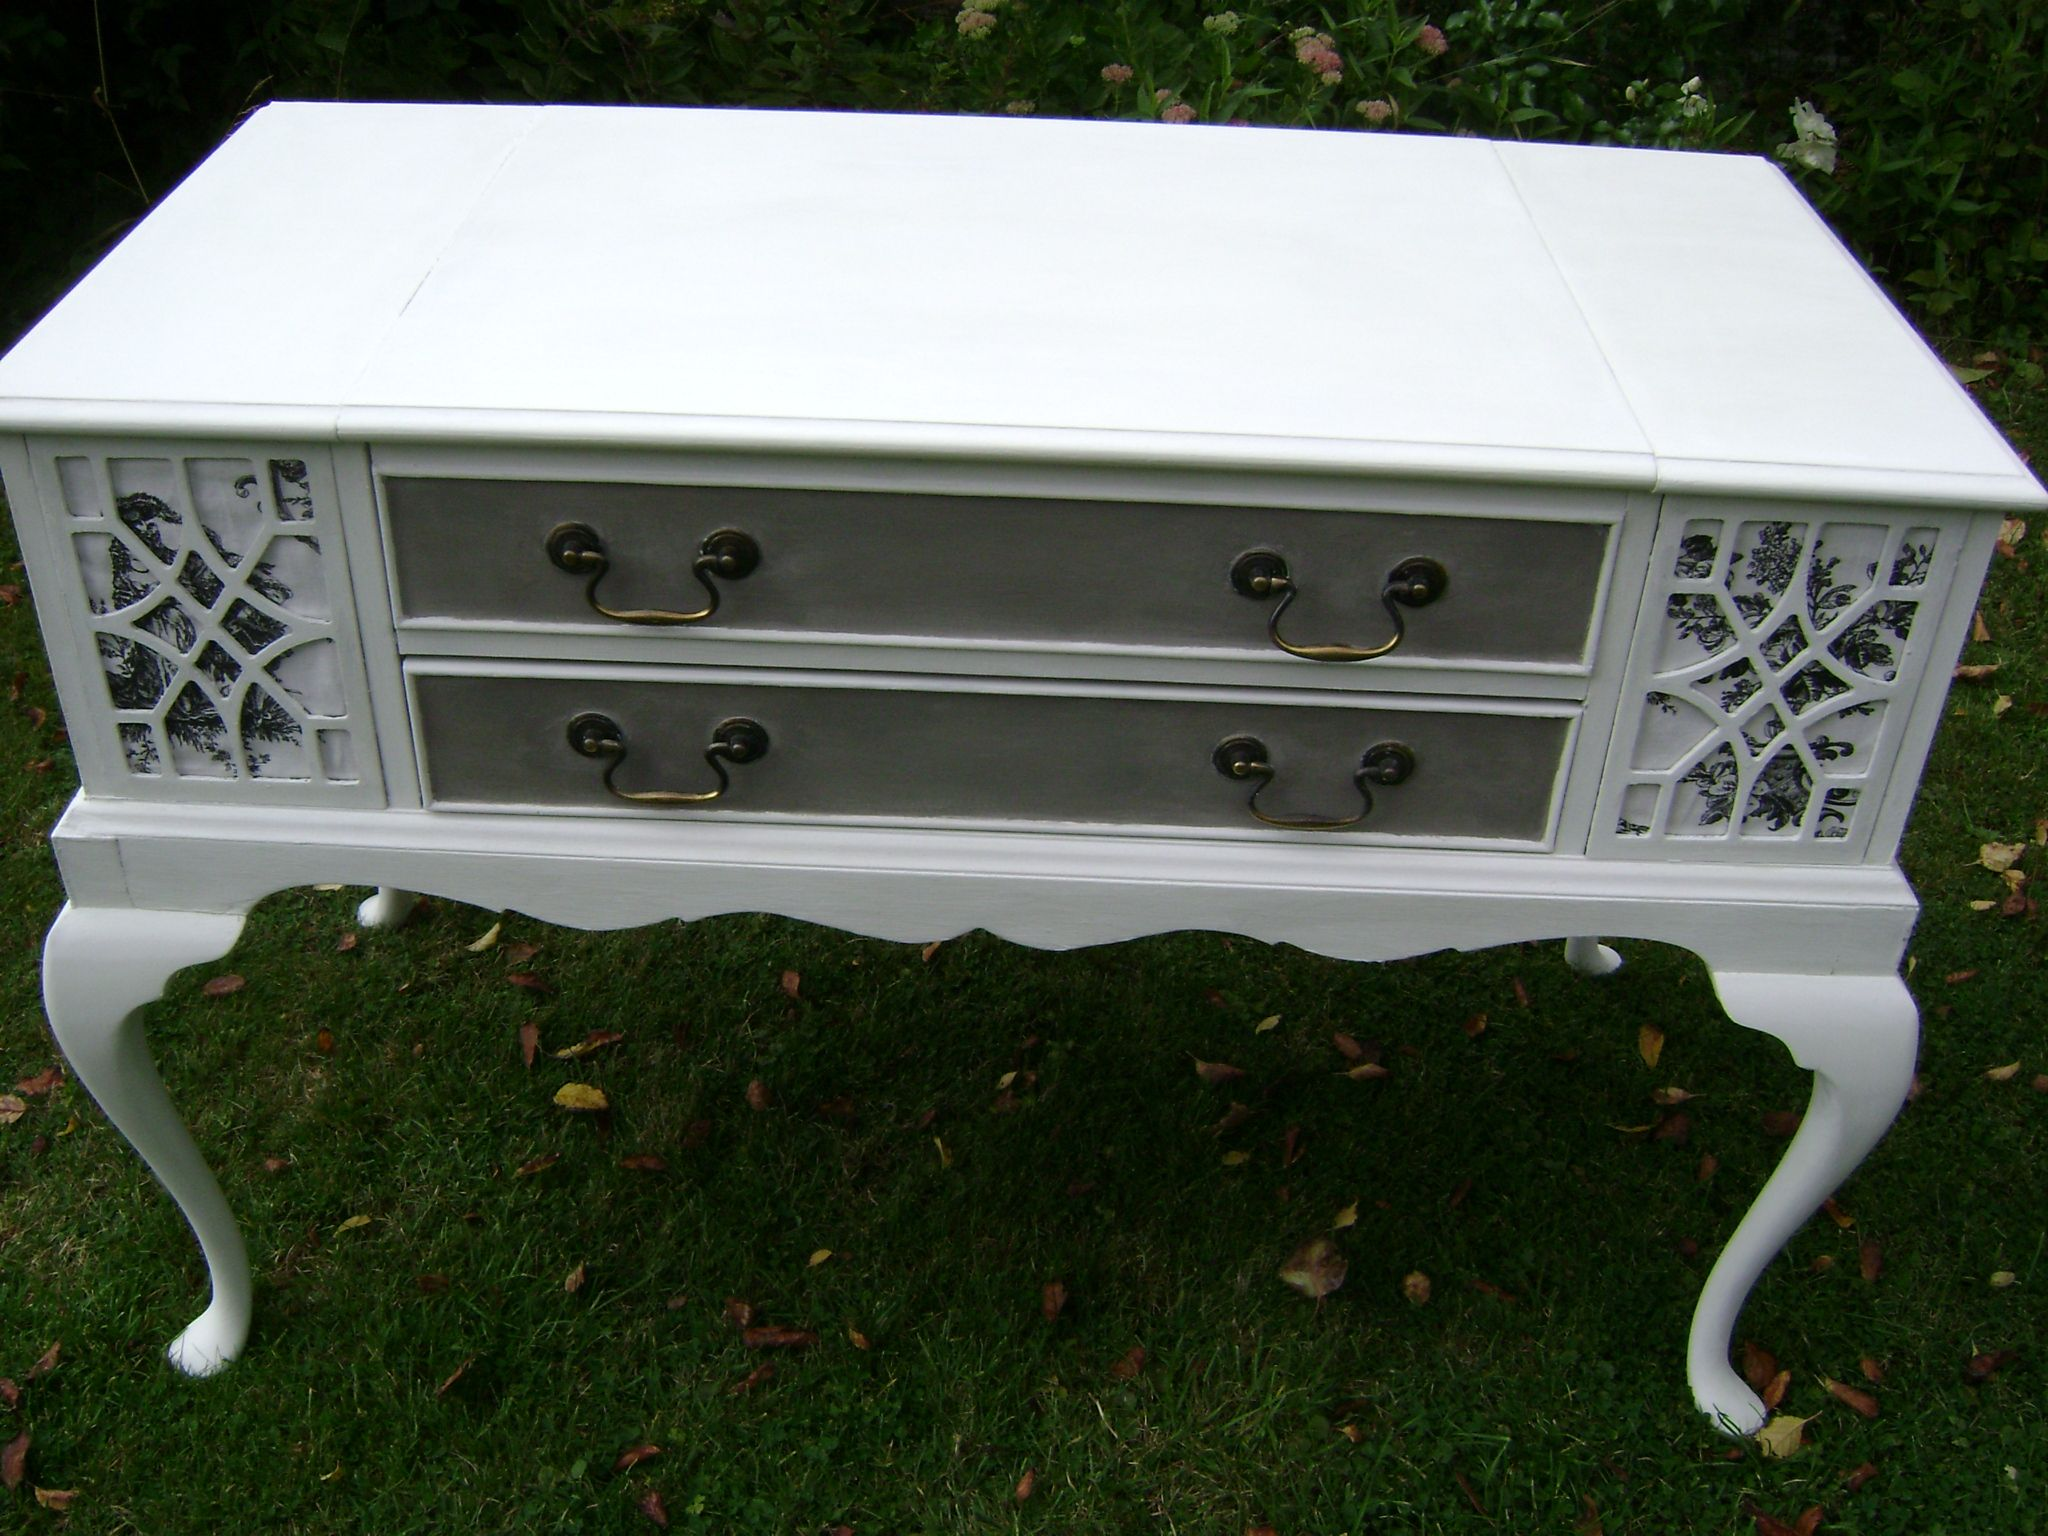 This is an old dynatron radiogram that i remodelled as a tv cabinet